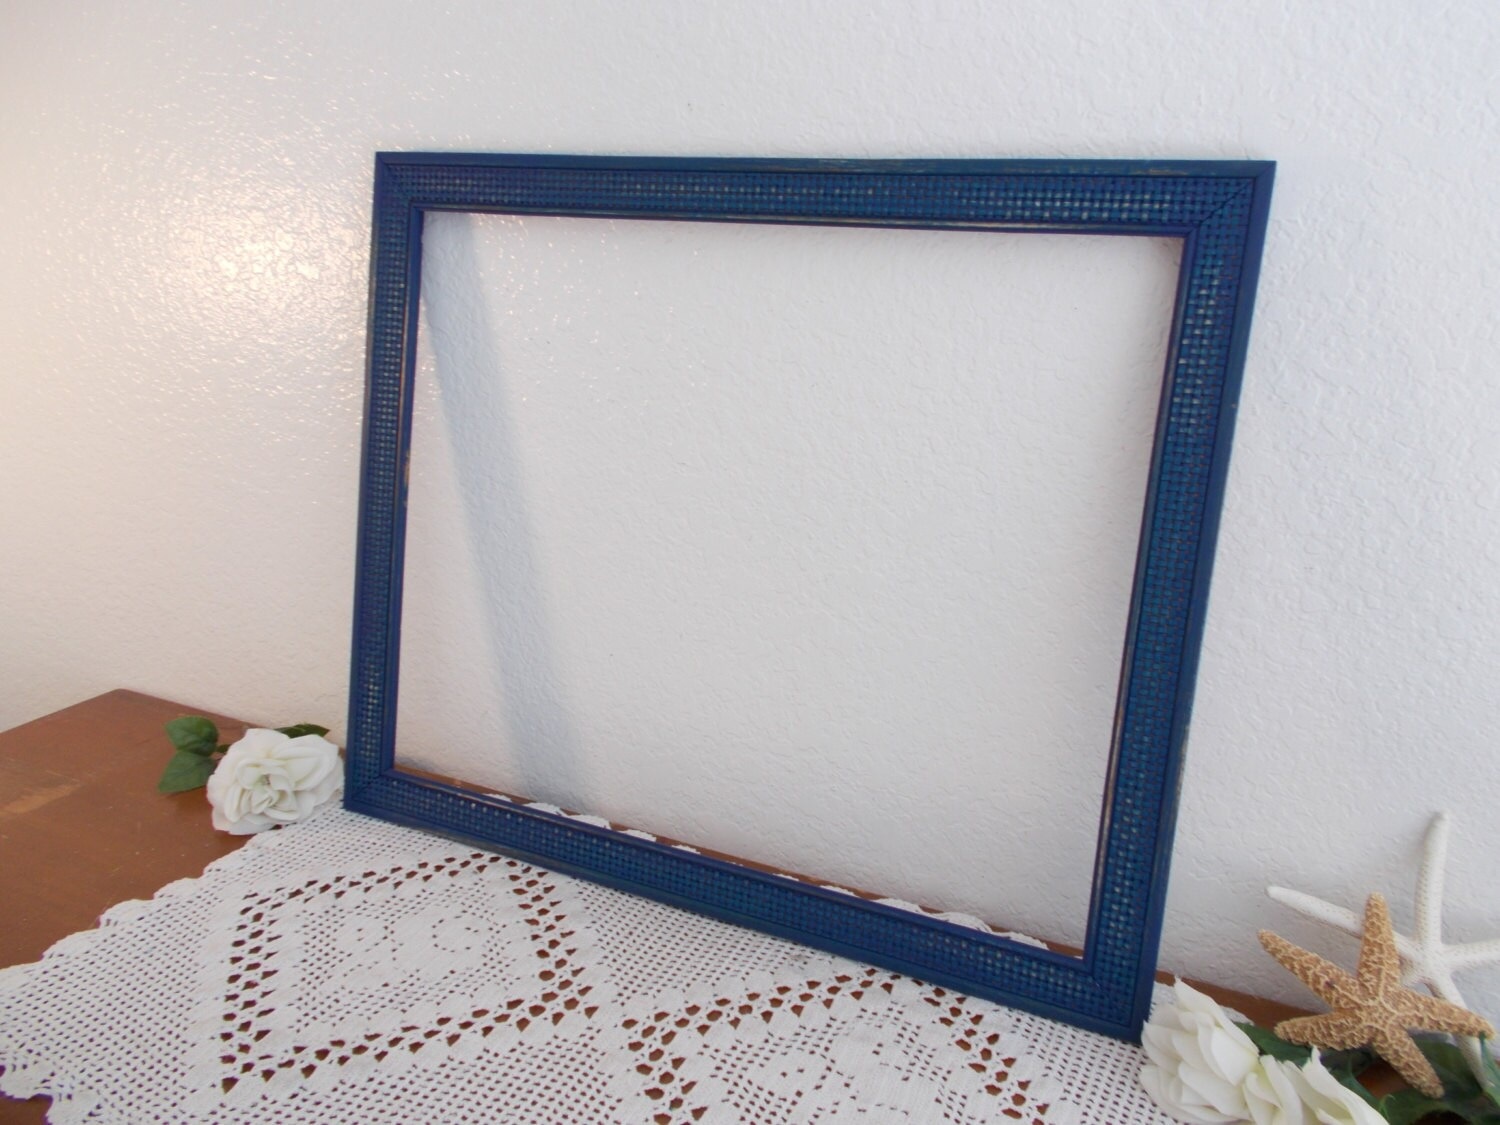 large navy blue picture frame 16 x 20 photo decoration rustic shabby chic beach cottage coastal. Black Bedroom Furniture Sets. Home Design Ideas